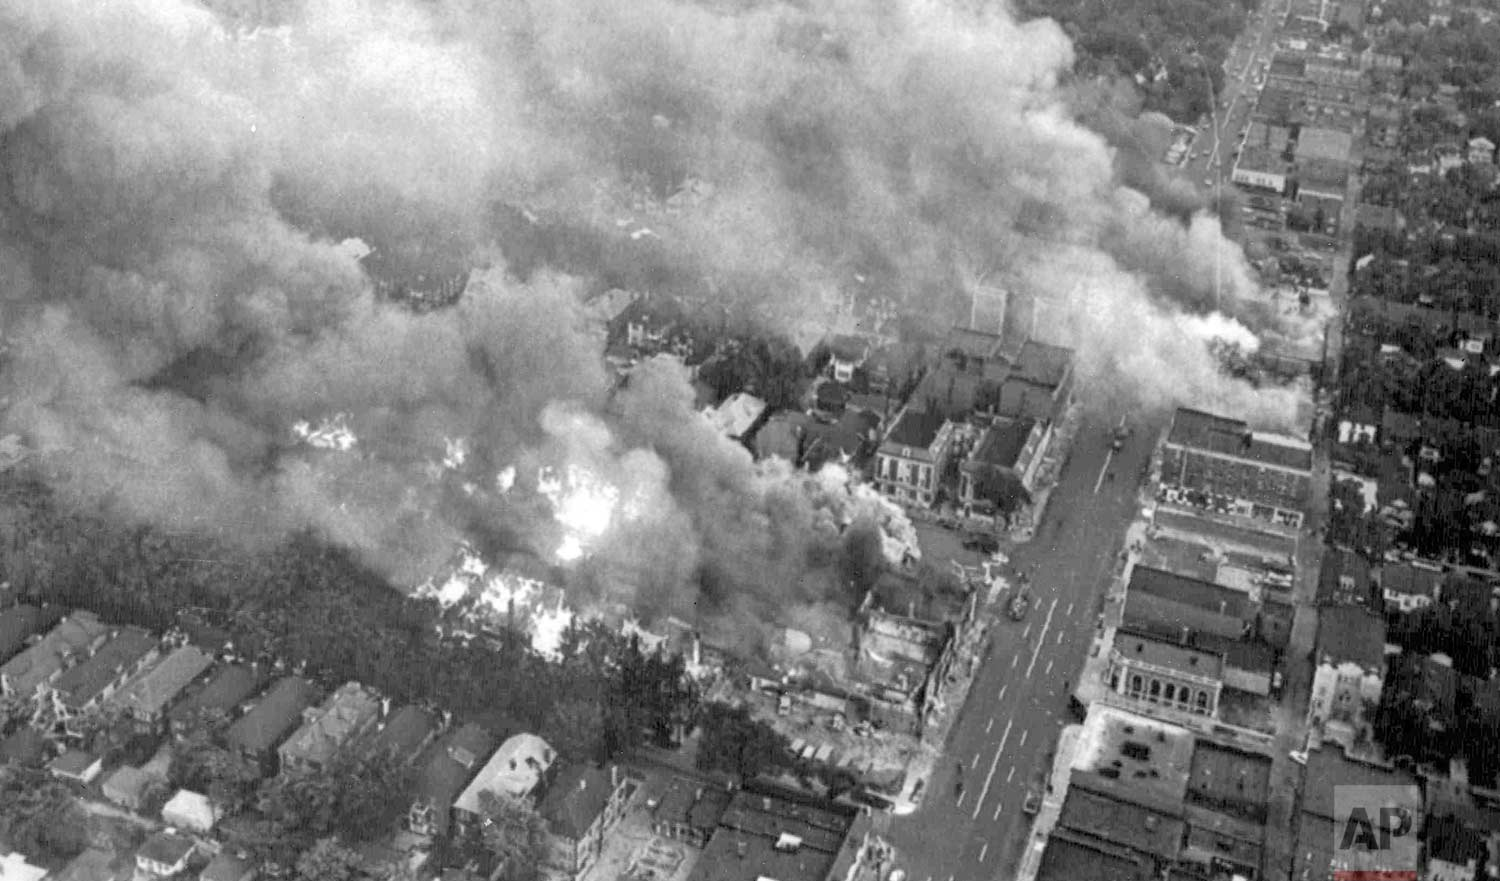 In this July 24, 1967 photo, multiple fires burn in a section of riot-torn Detroit, about three miles west of the downtown area. Five days of violence would leave 33 blacks and 10 whites dead, and more than 1,400 buildings burned. More than 7,000 people were arrested. (AP Photo)